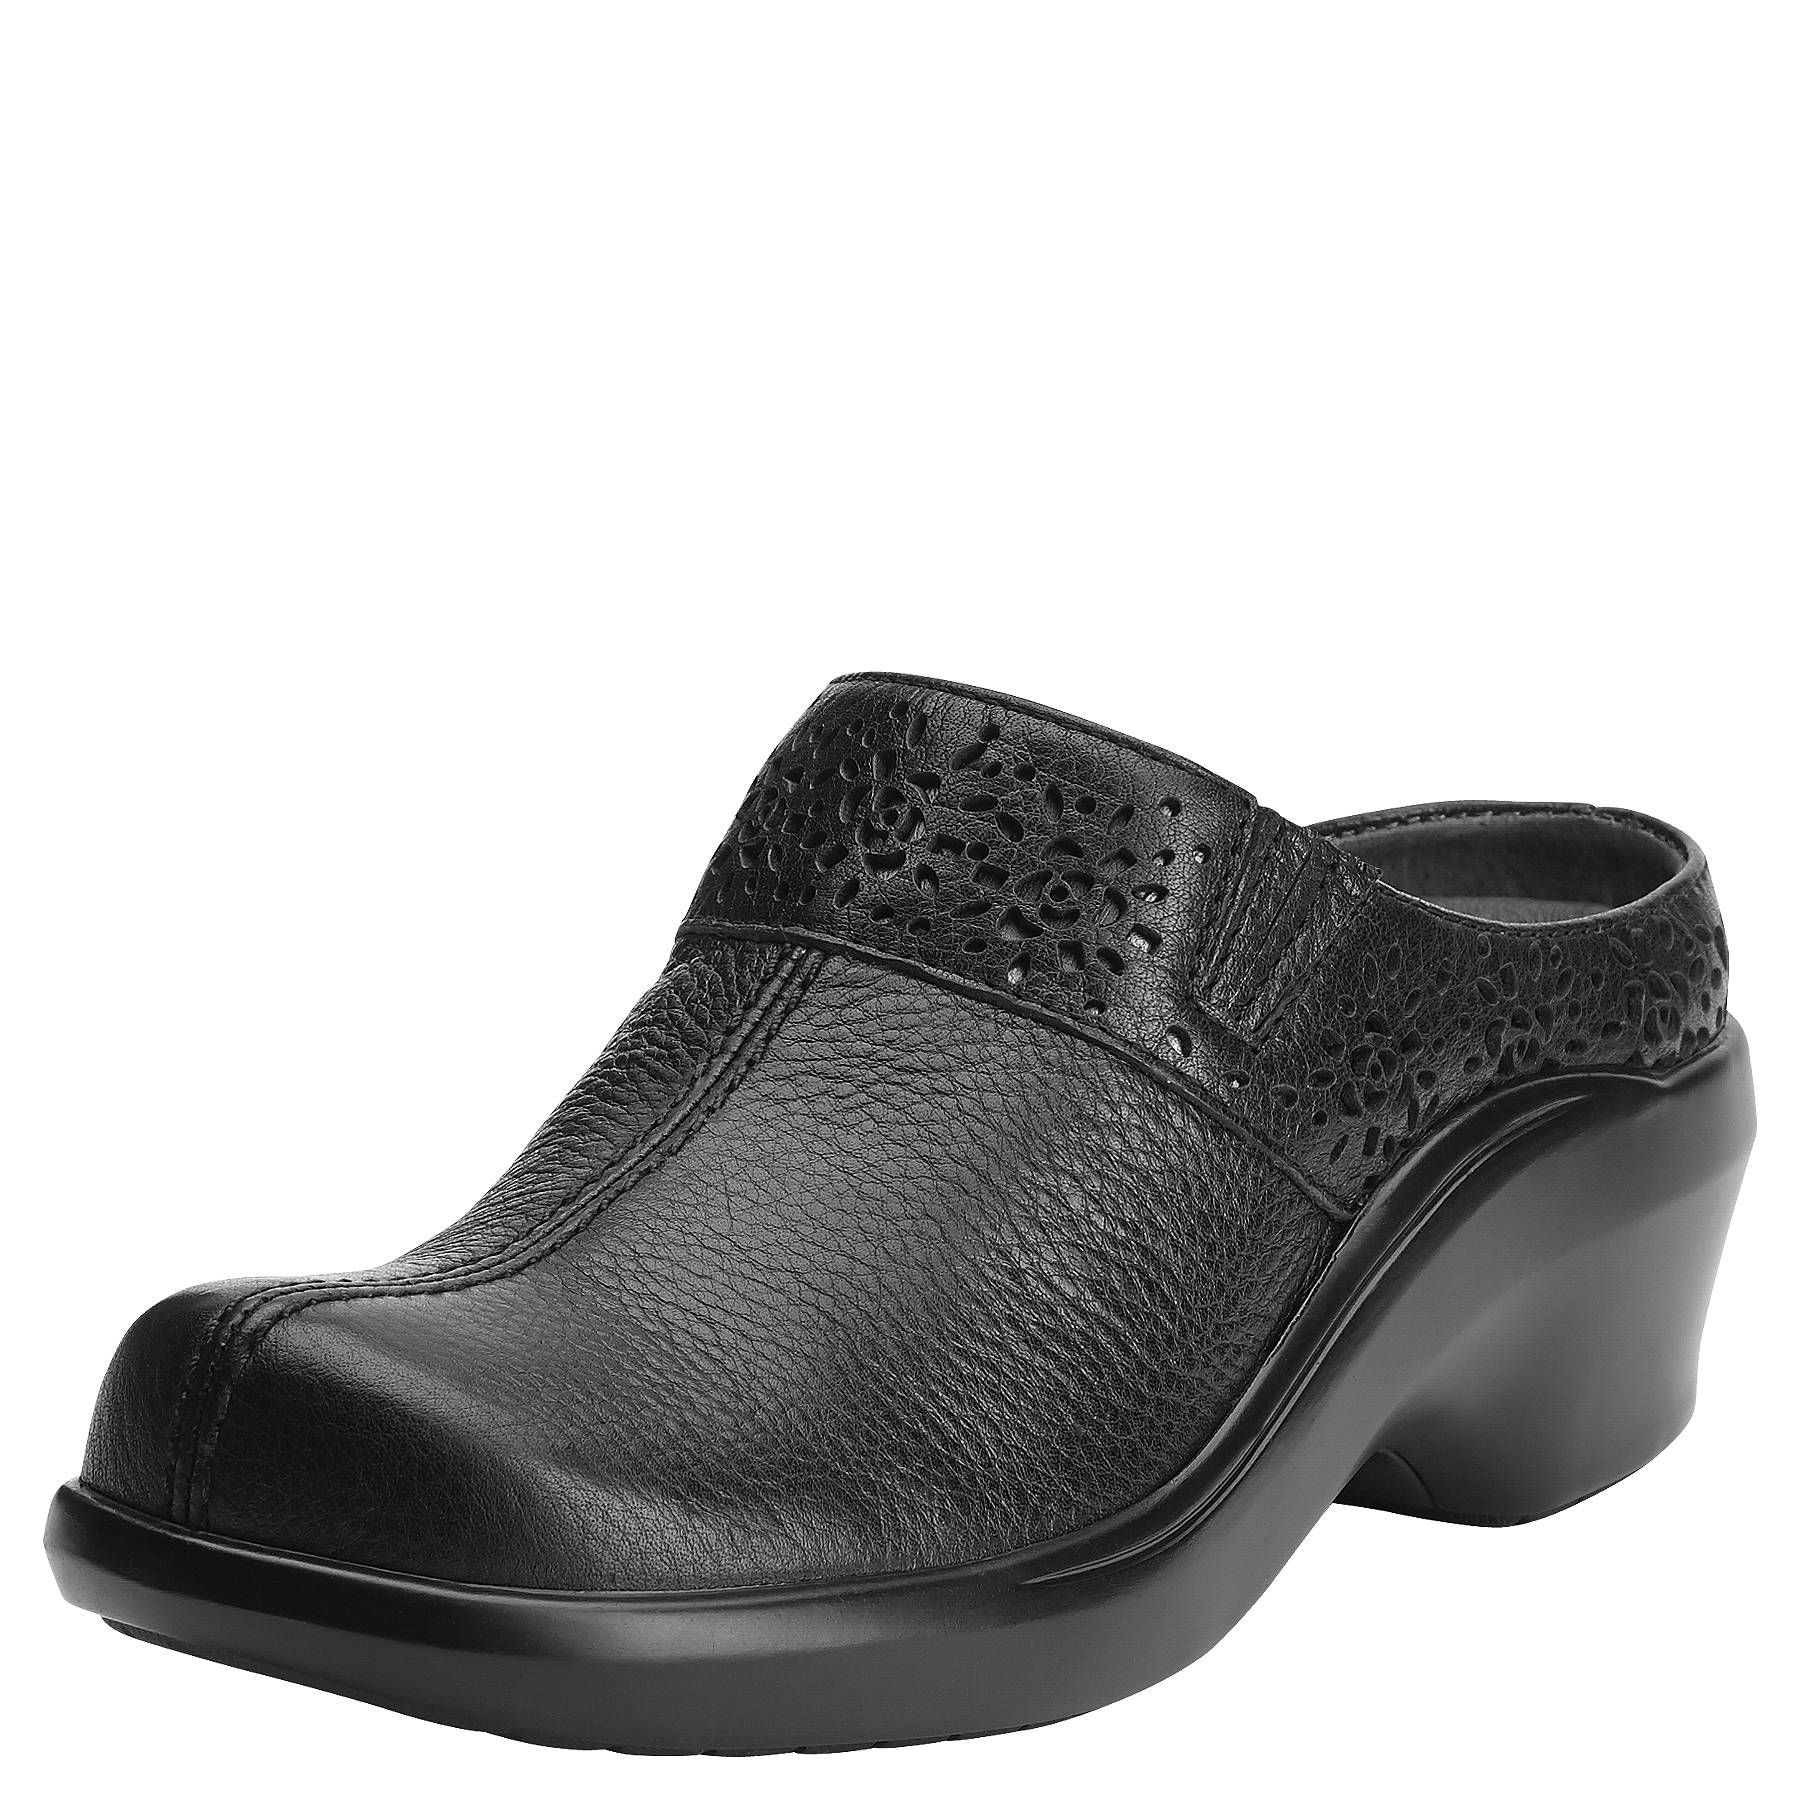 Ariat Ladies Santa Cruz Mule - Black